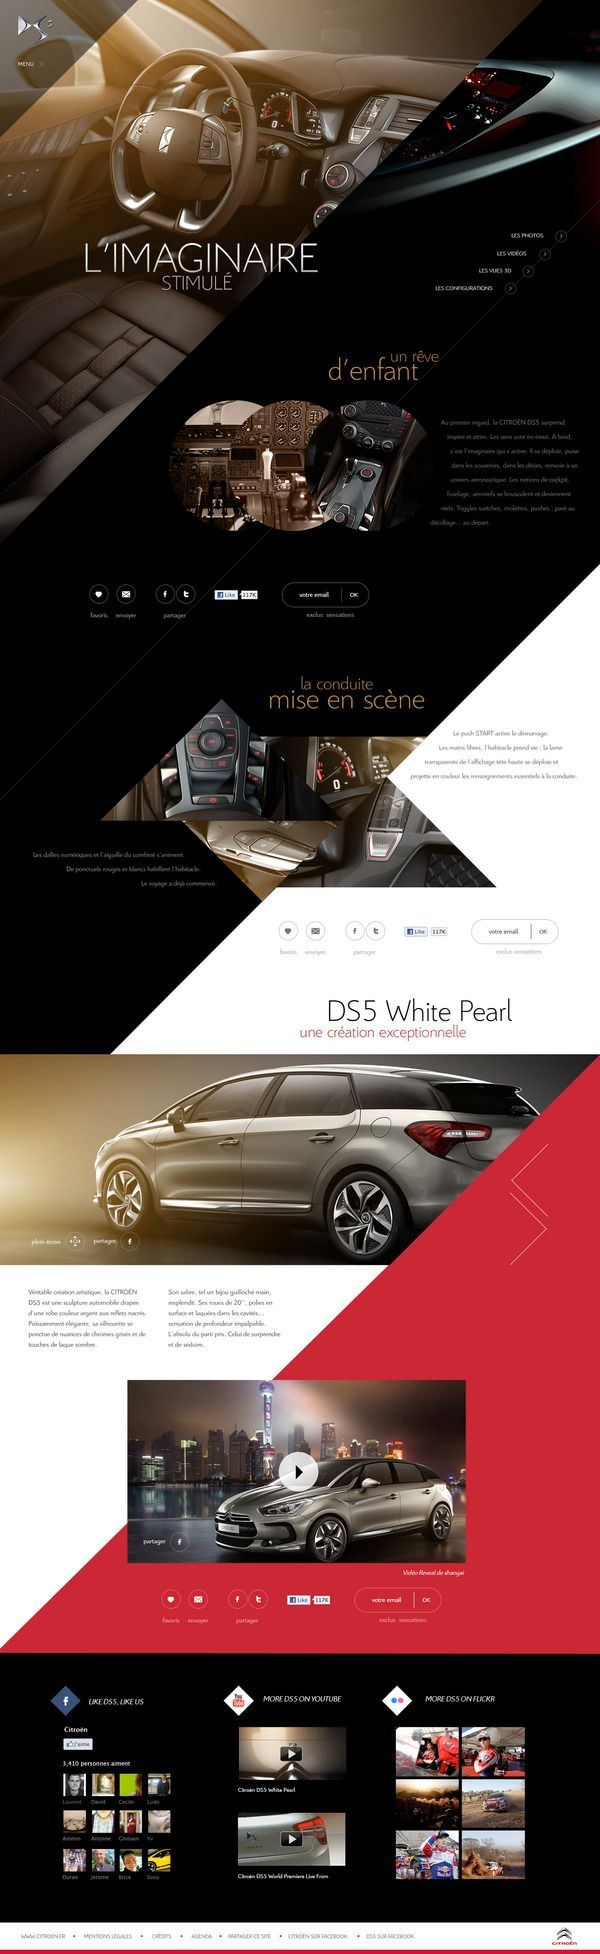 Citroen DS5 by Sébastien Durand, via Behance